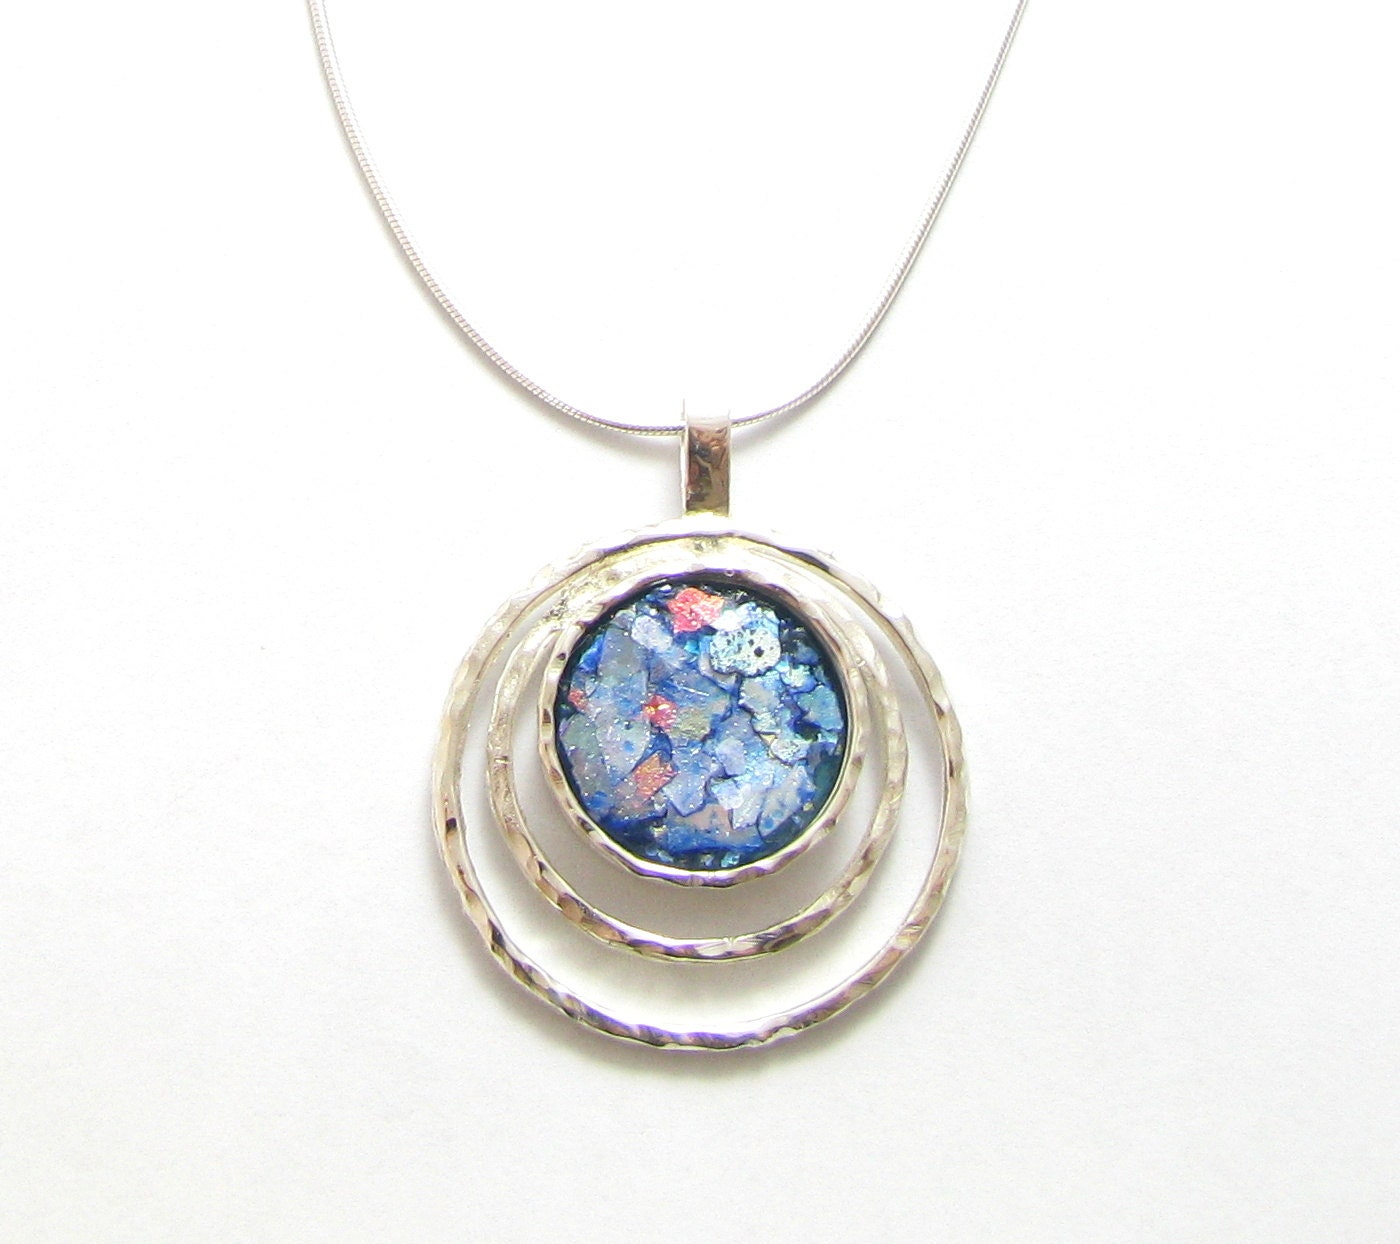 Amazing 925 Sterling Silver Roman Glass  Pendant  Necklace